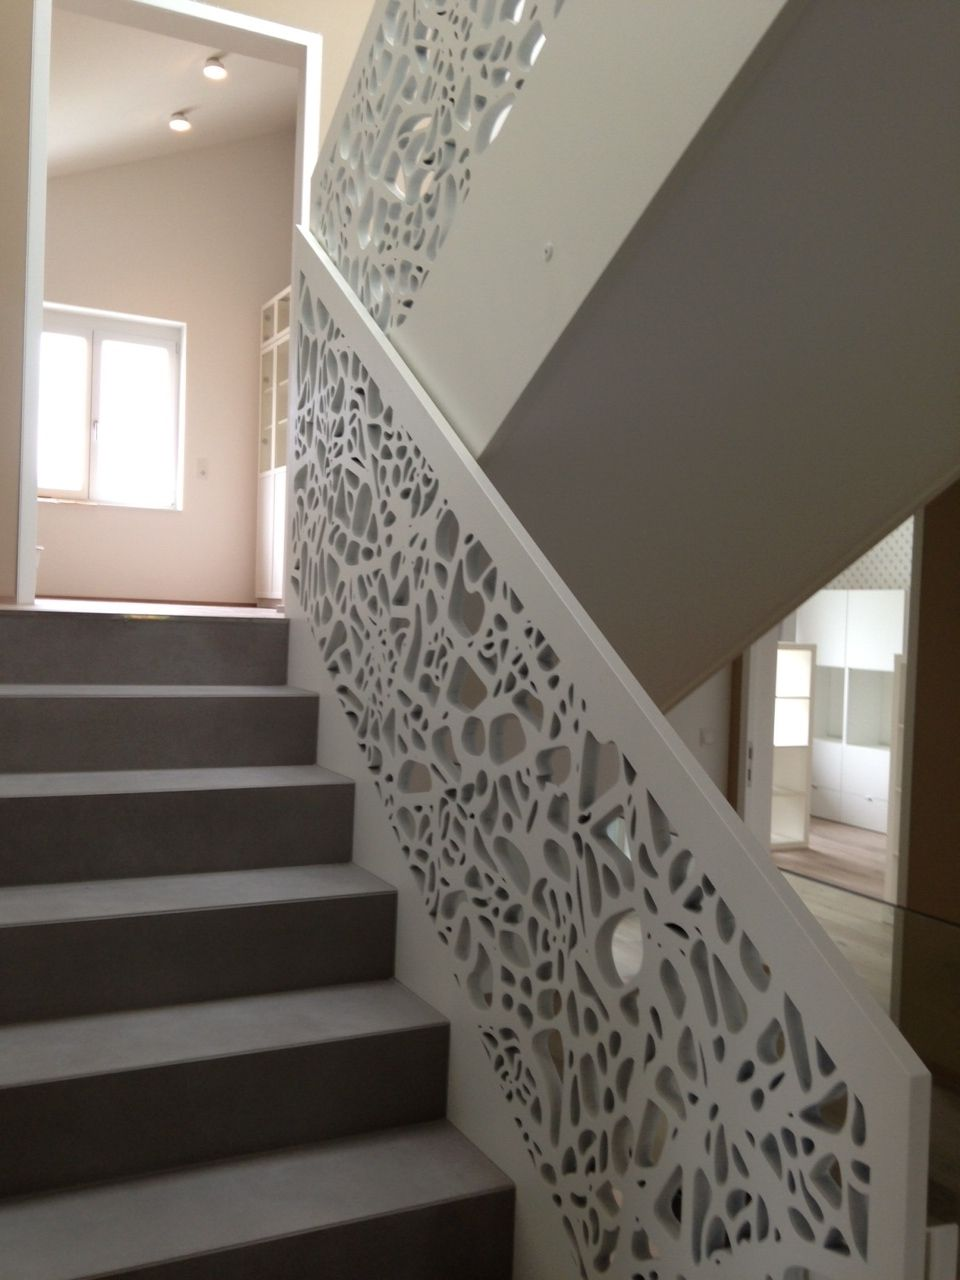 Interiores decoracion pinterest interiores escalera - Pasamanos de escaleras interiores ...